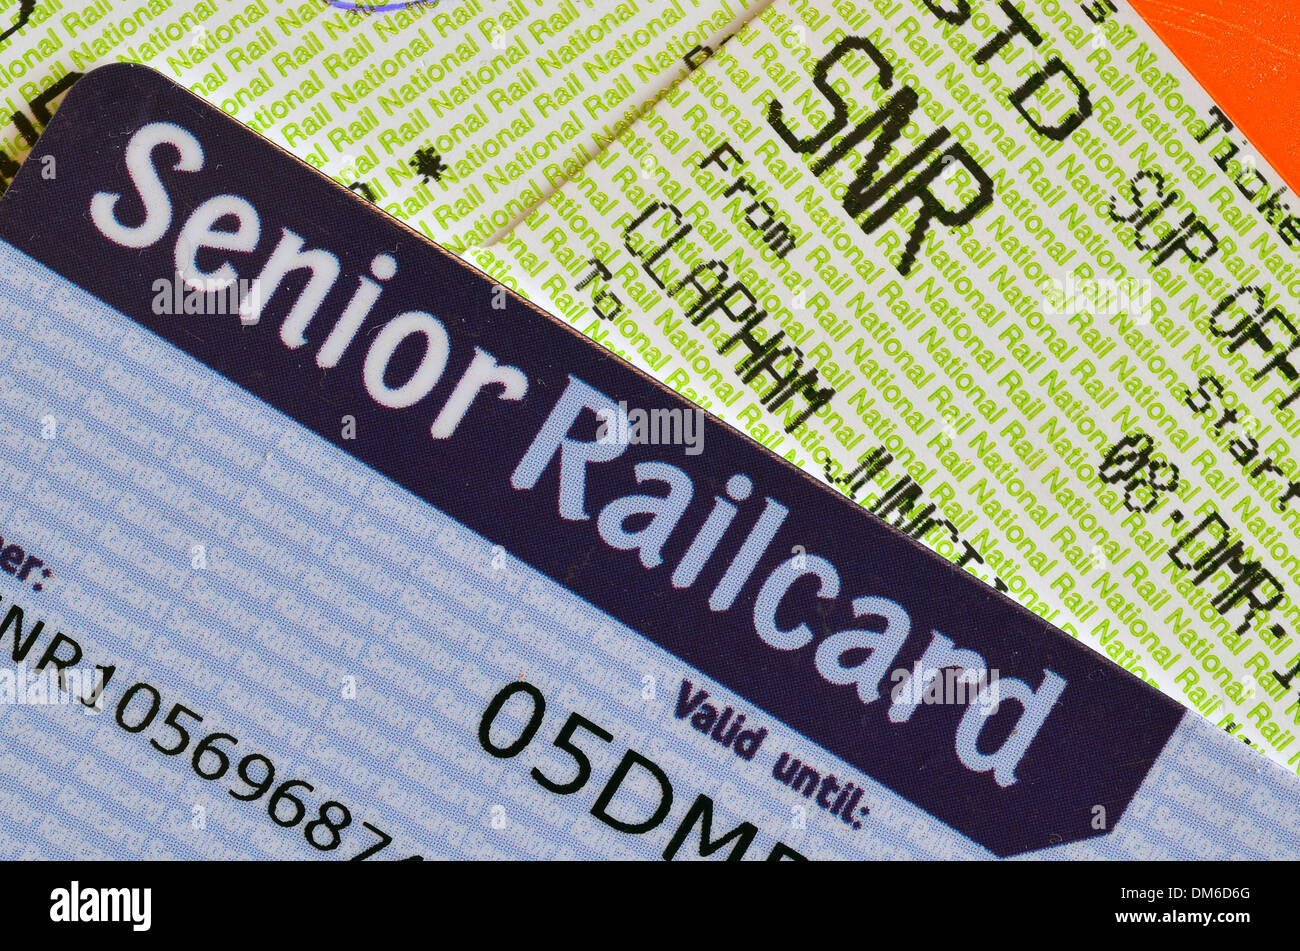 UK Senior Railcard with ticket printed with SNR to indicate that the holder must have a Senior Railcard to validate Stock Photo